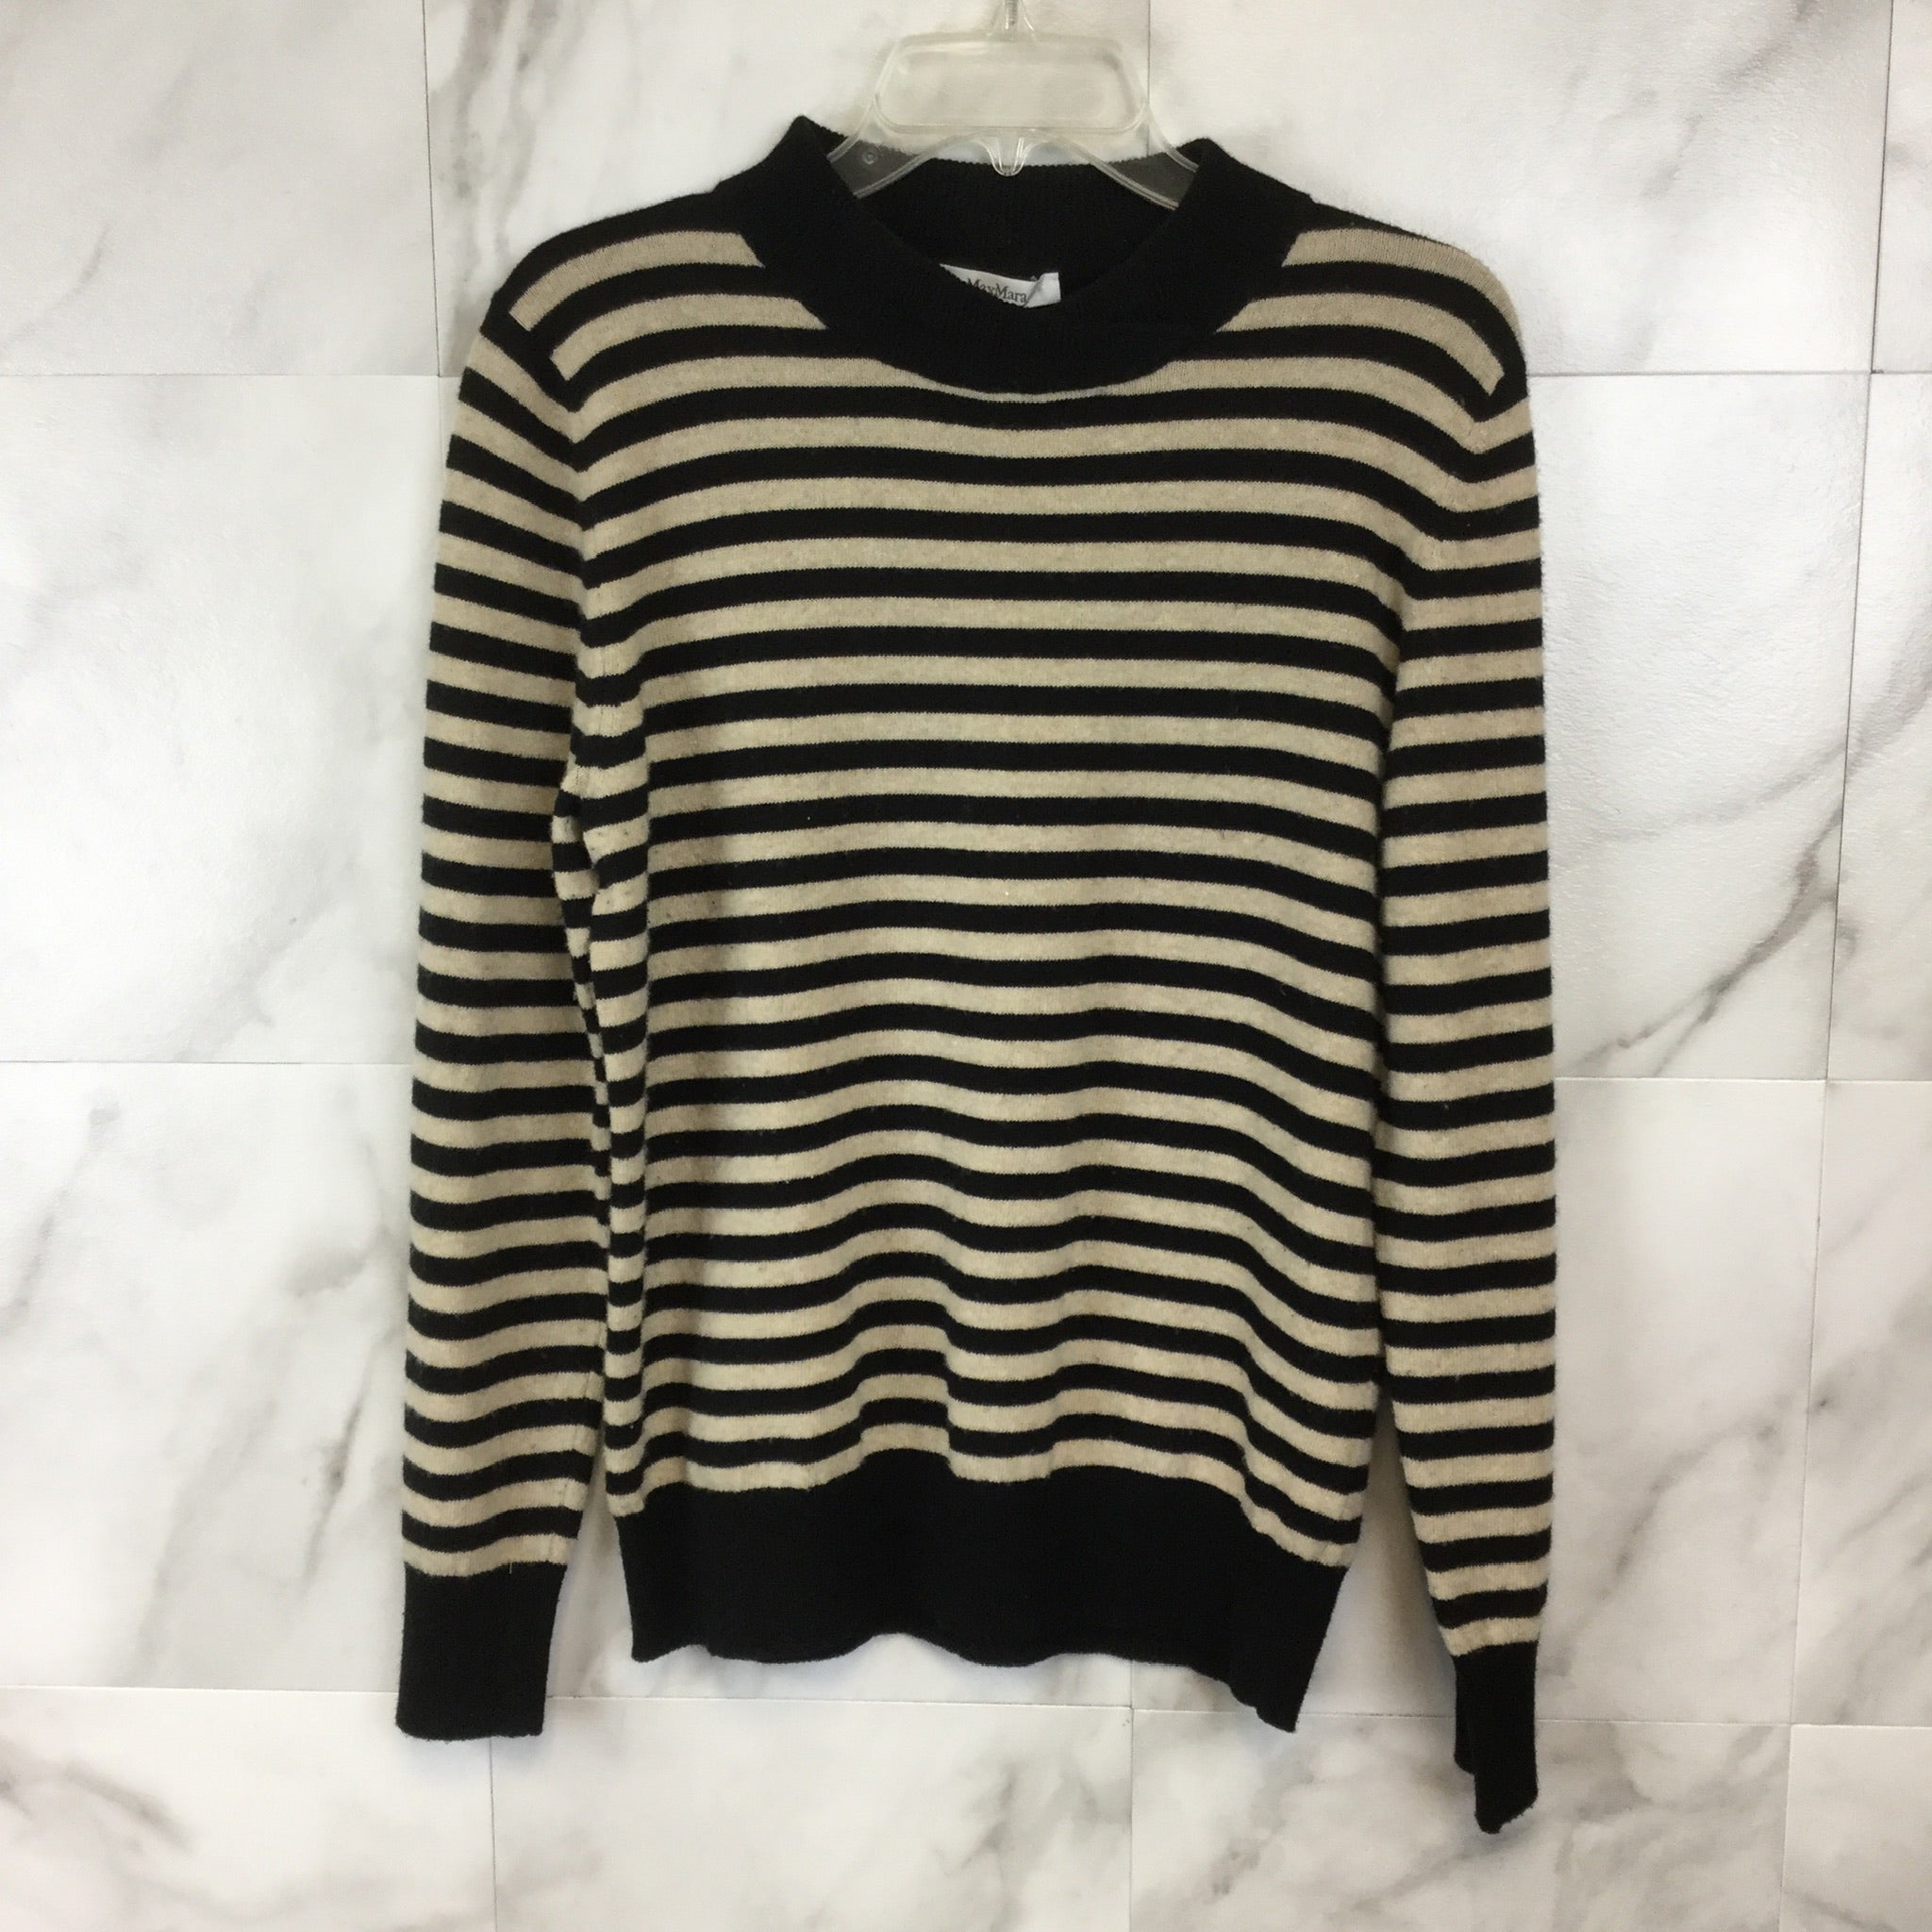 MaxMara Striped Wool & Cashmere Sweater - Size XL